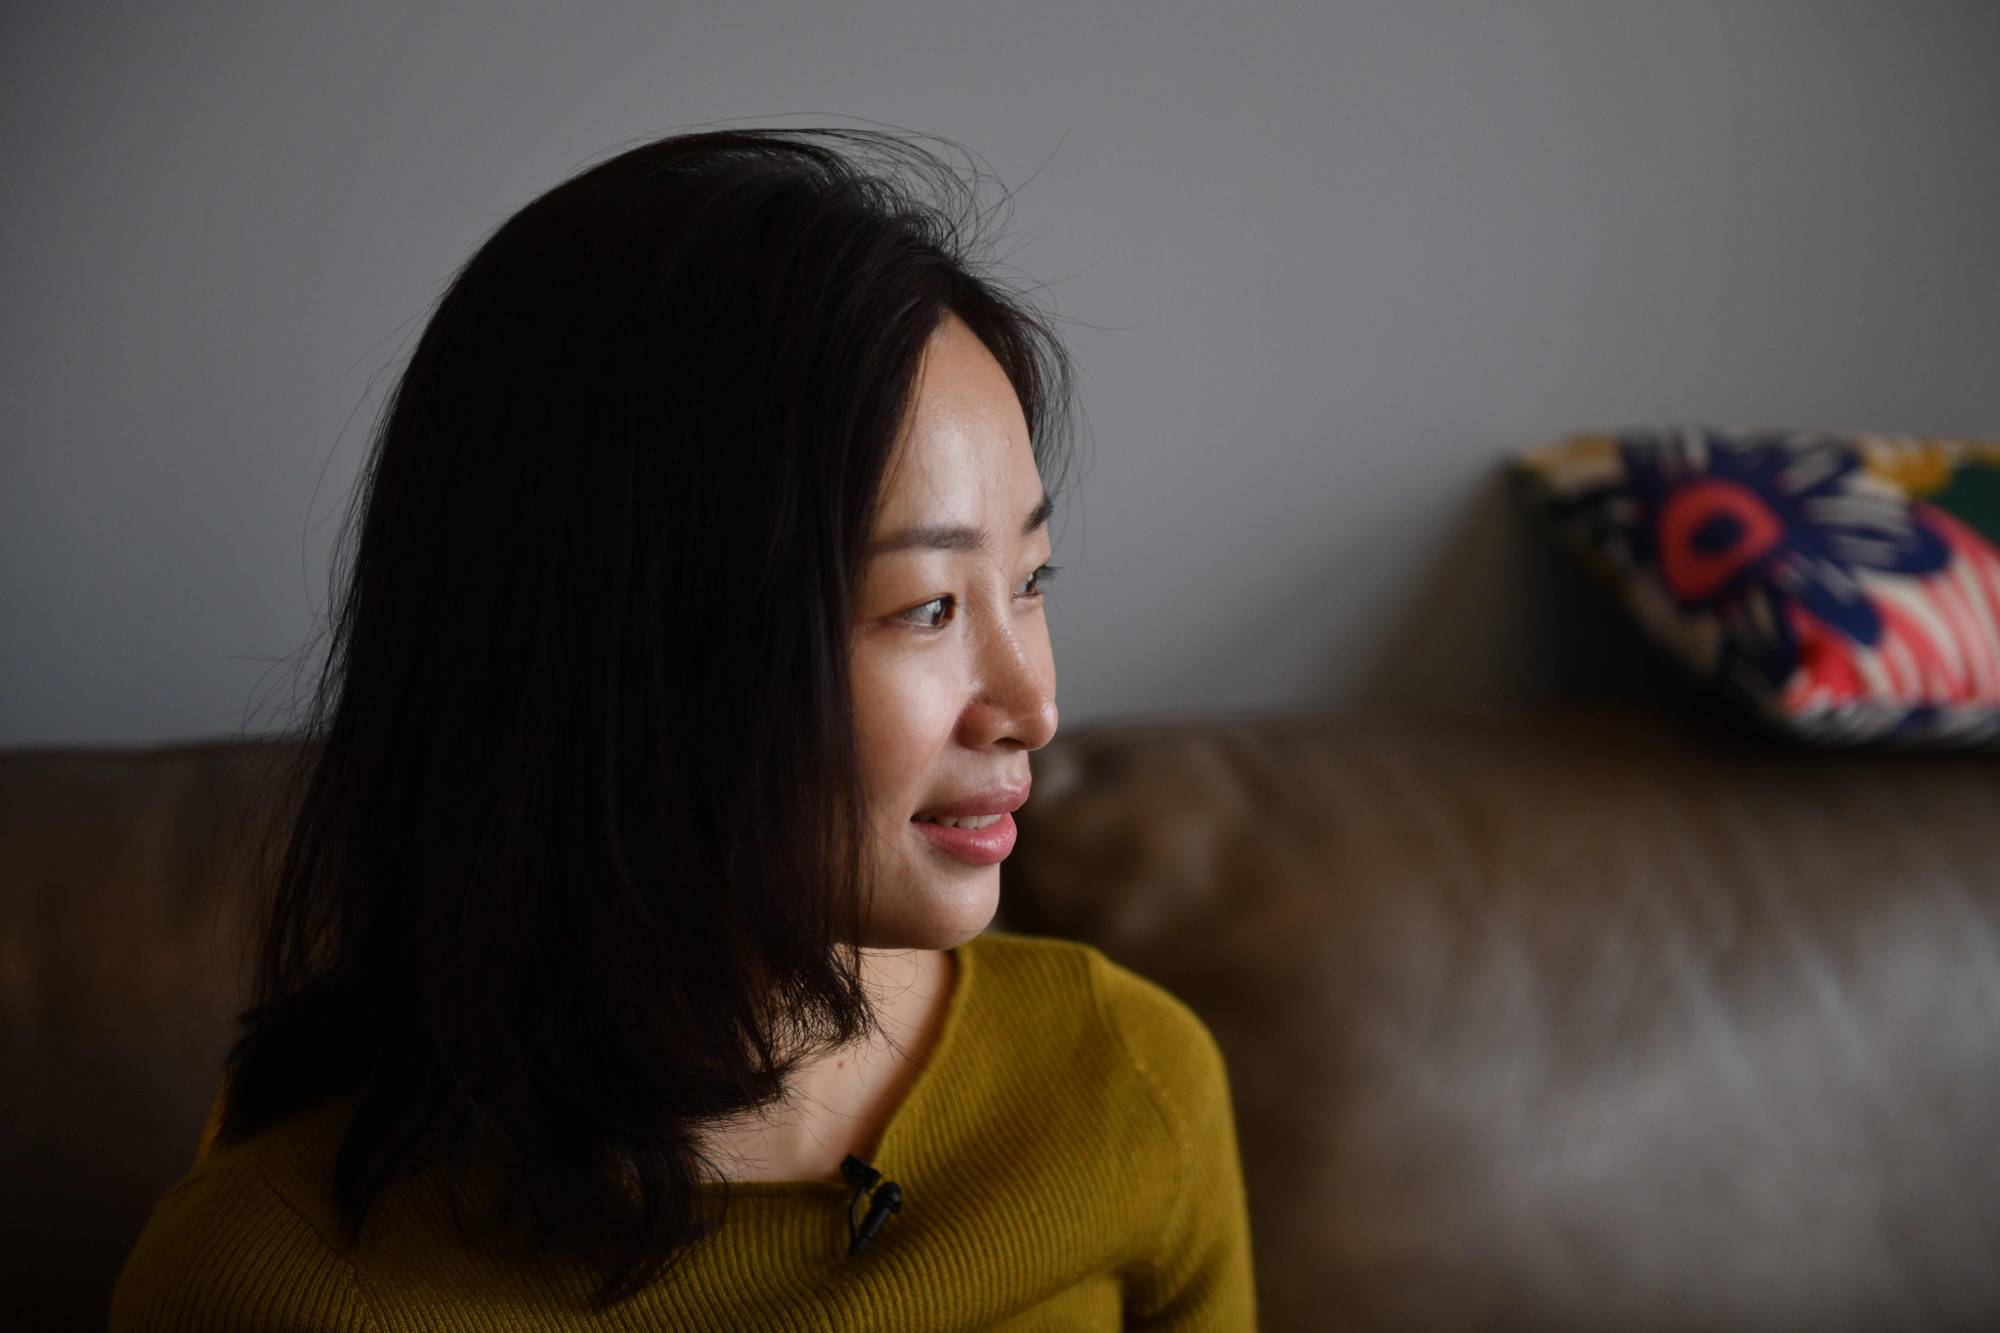 Sex and relationships advice blogger Yi Heng, who runs discussion groups on the topic of sex toys, poses for a photo at her home in Beijing on Wednesday. | AFP-JIJI